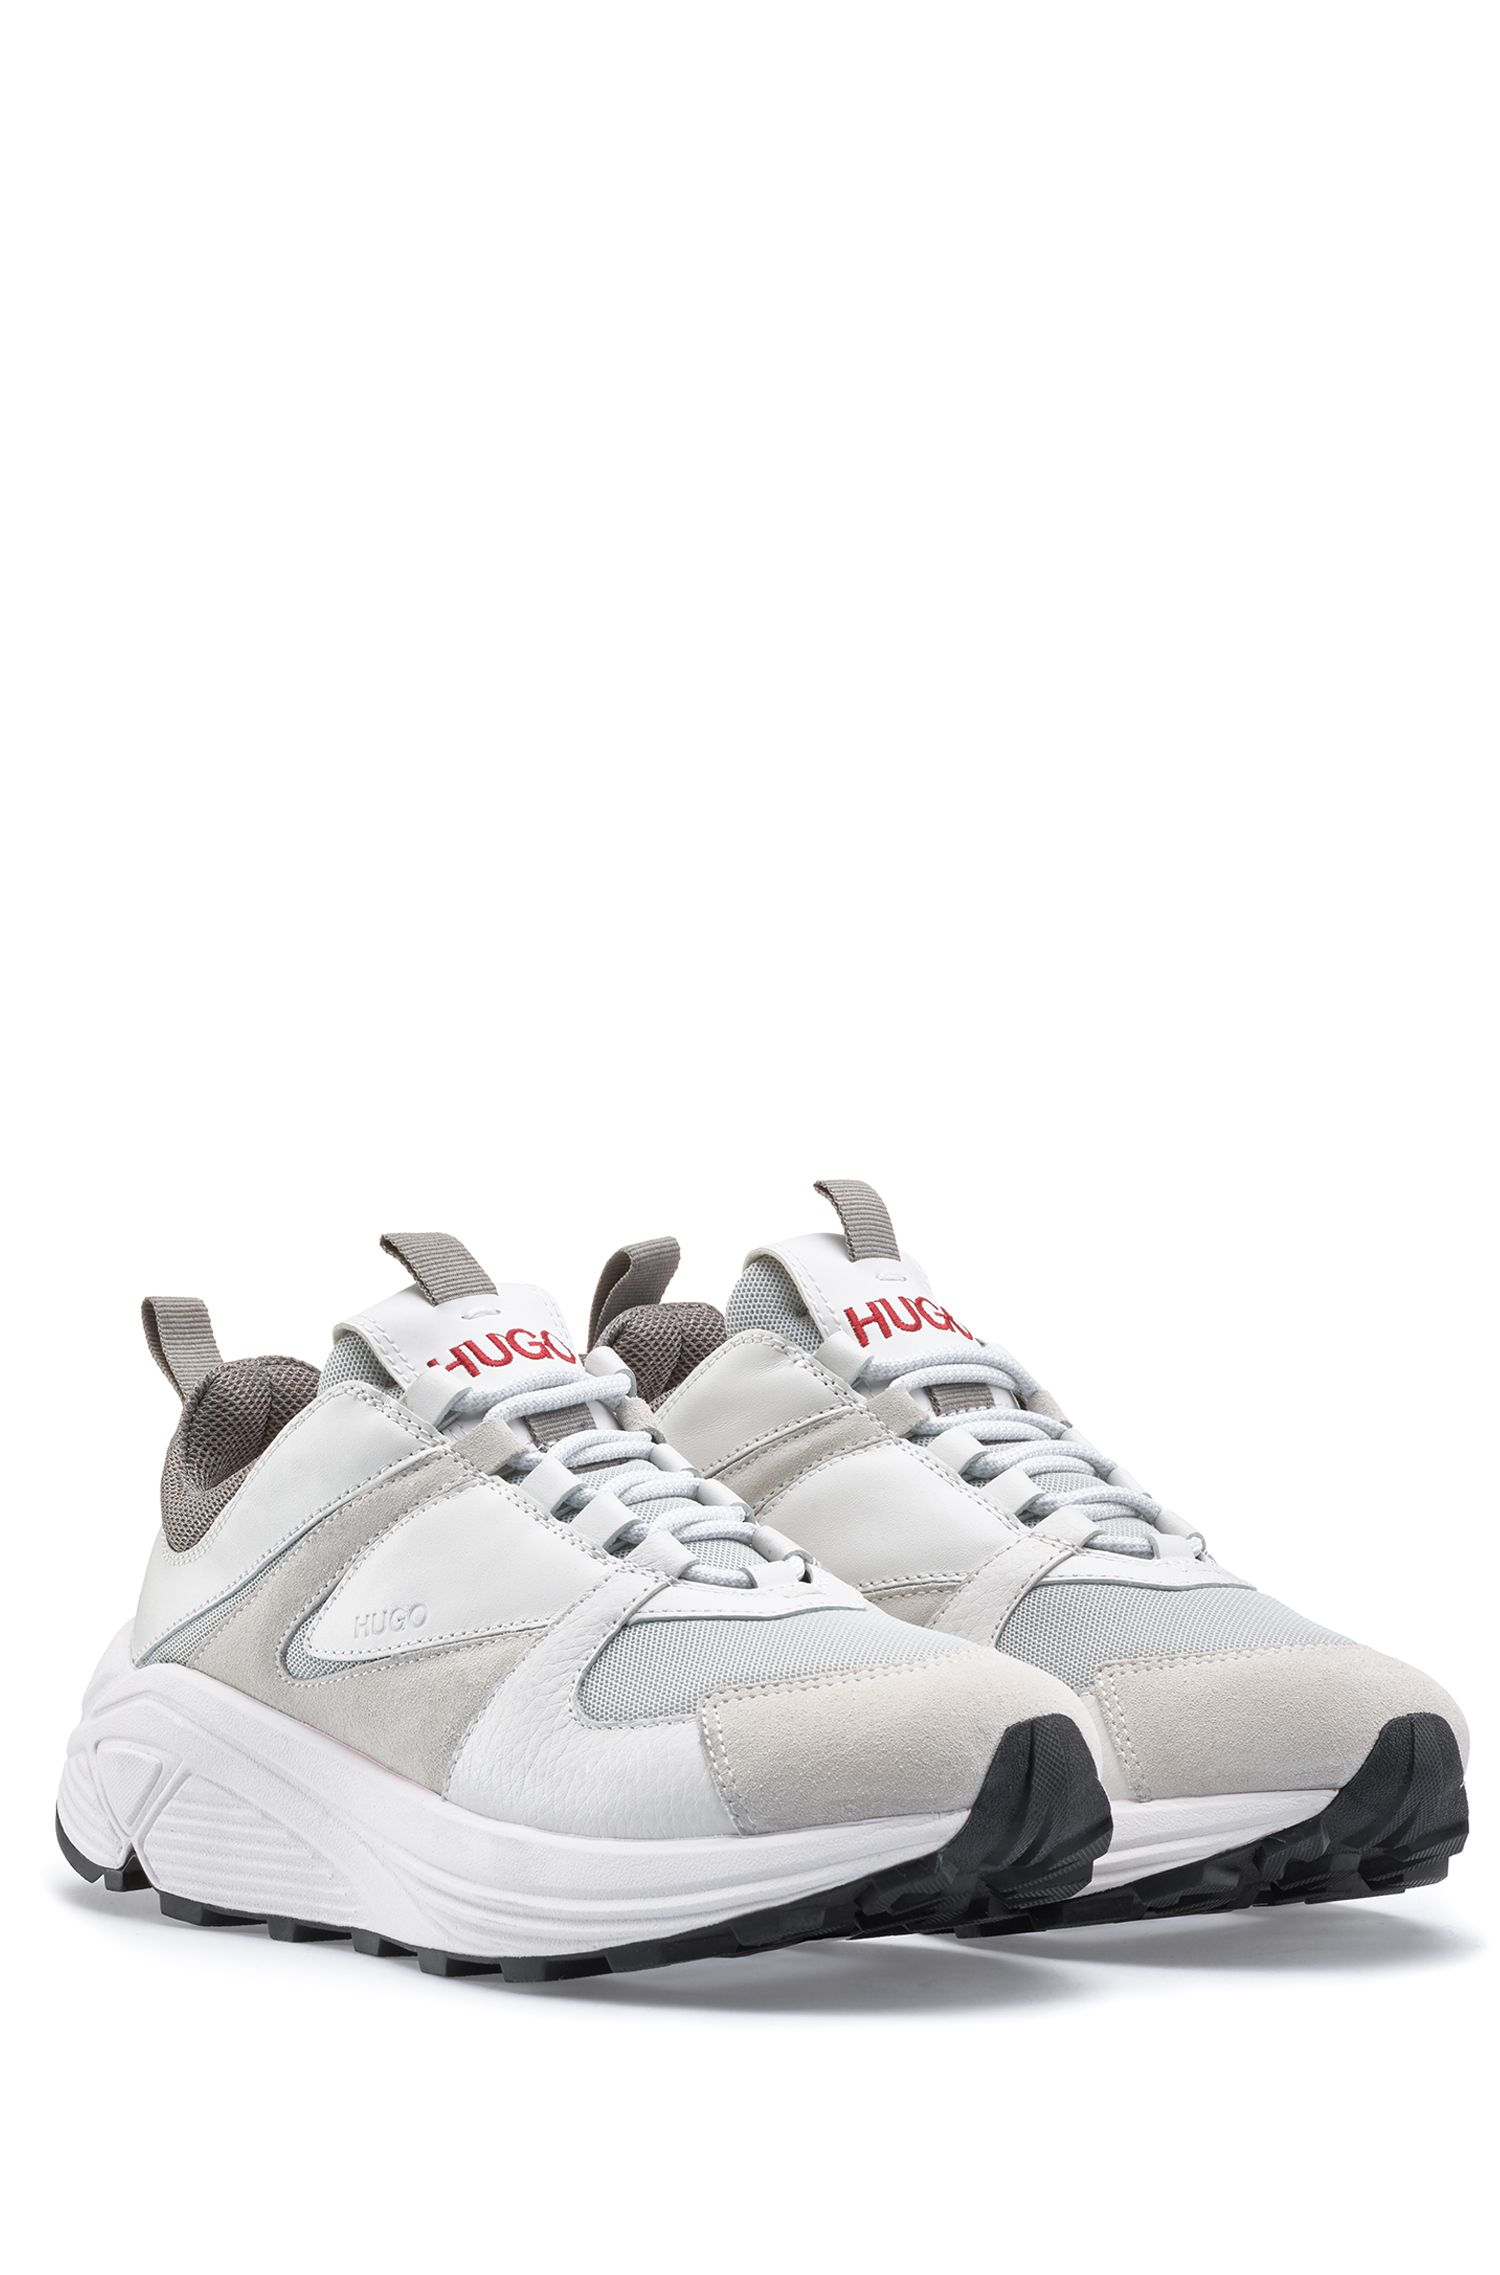 Chunky running-style sneakers in mesh, suede and leather, White